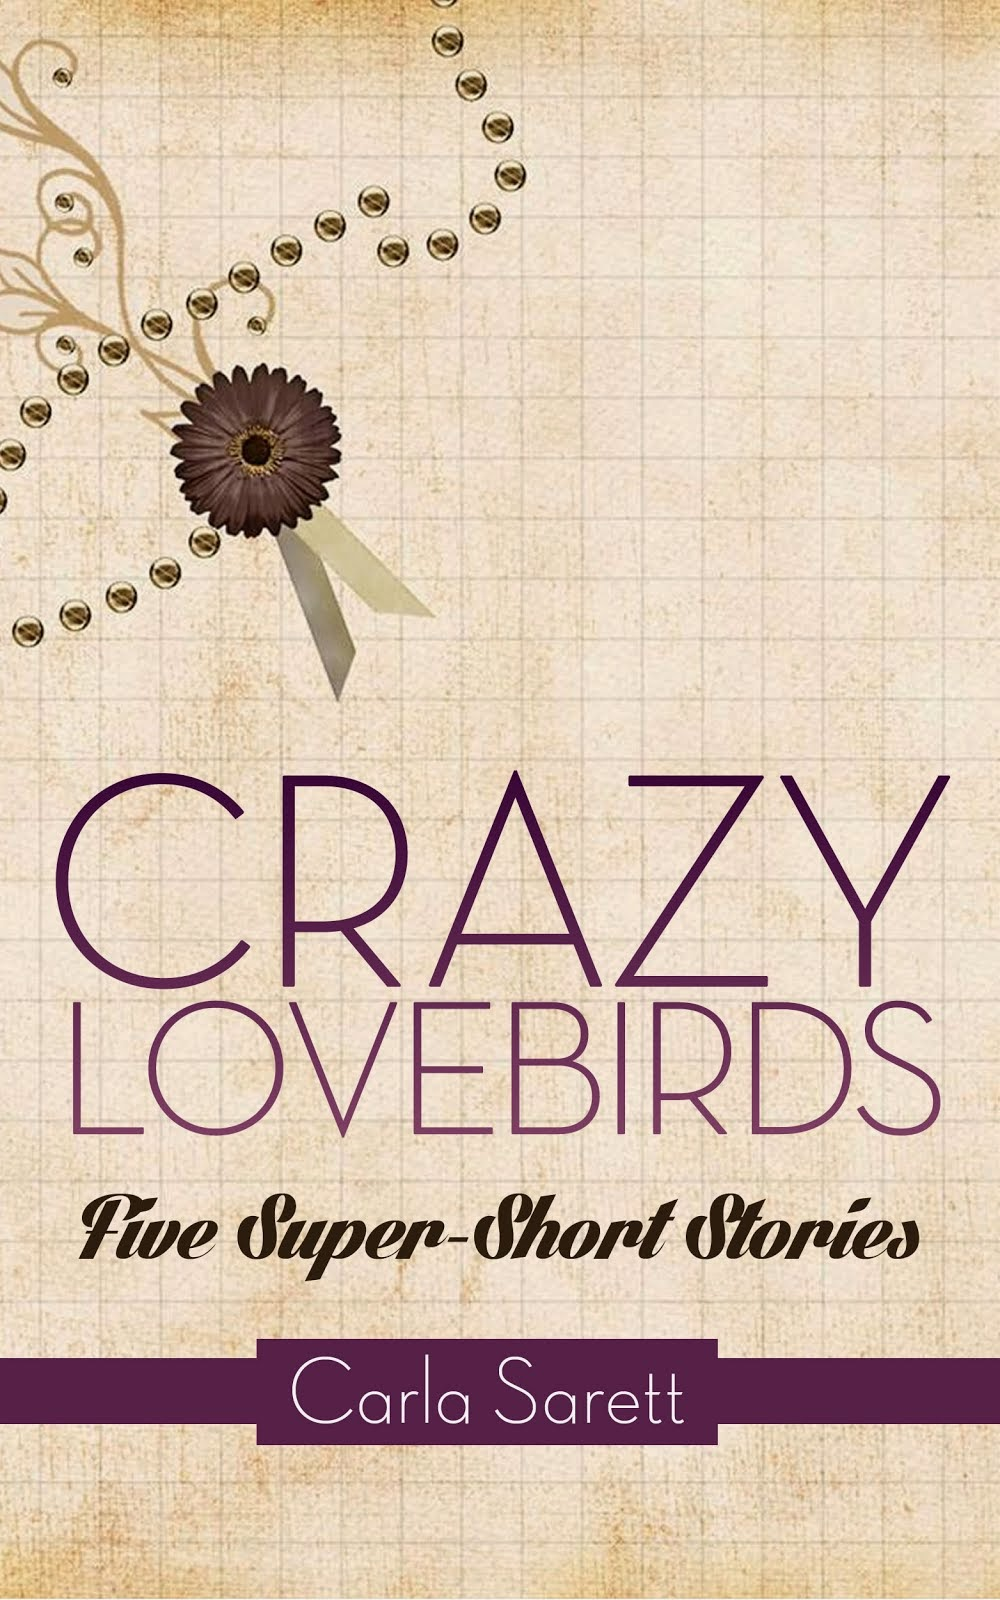 Crazy Lovebirds -- a flash fiction sampler